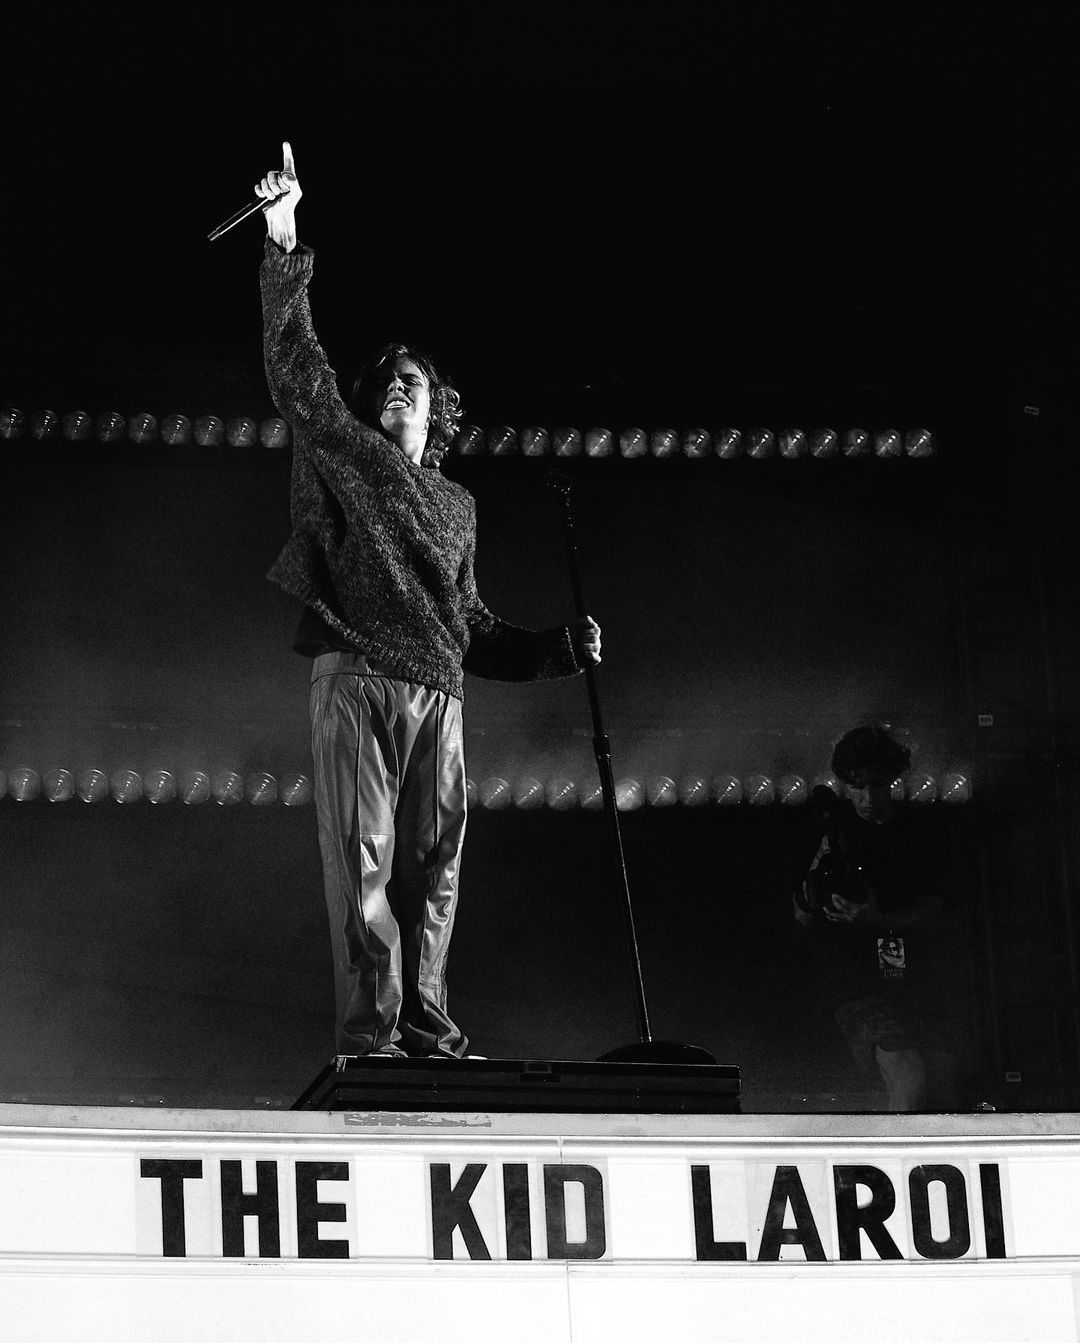 SPOTTED: The Kid Laroi Plays Surprise Show with Justin Bieber, Machine Gun Kelly and G Herbo